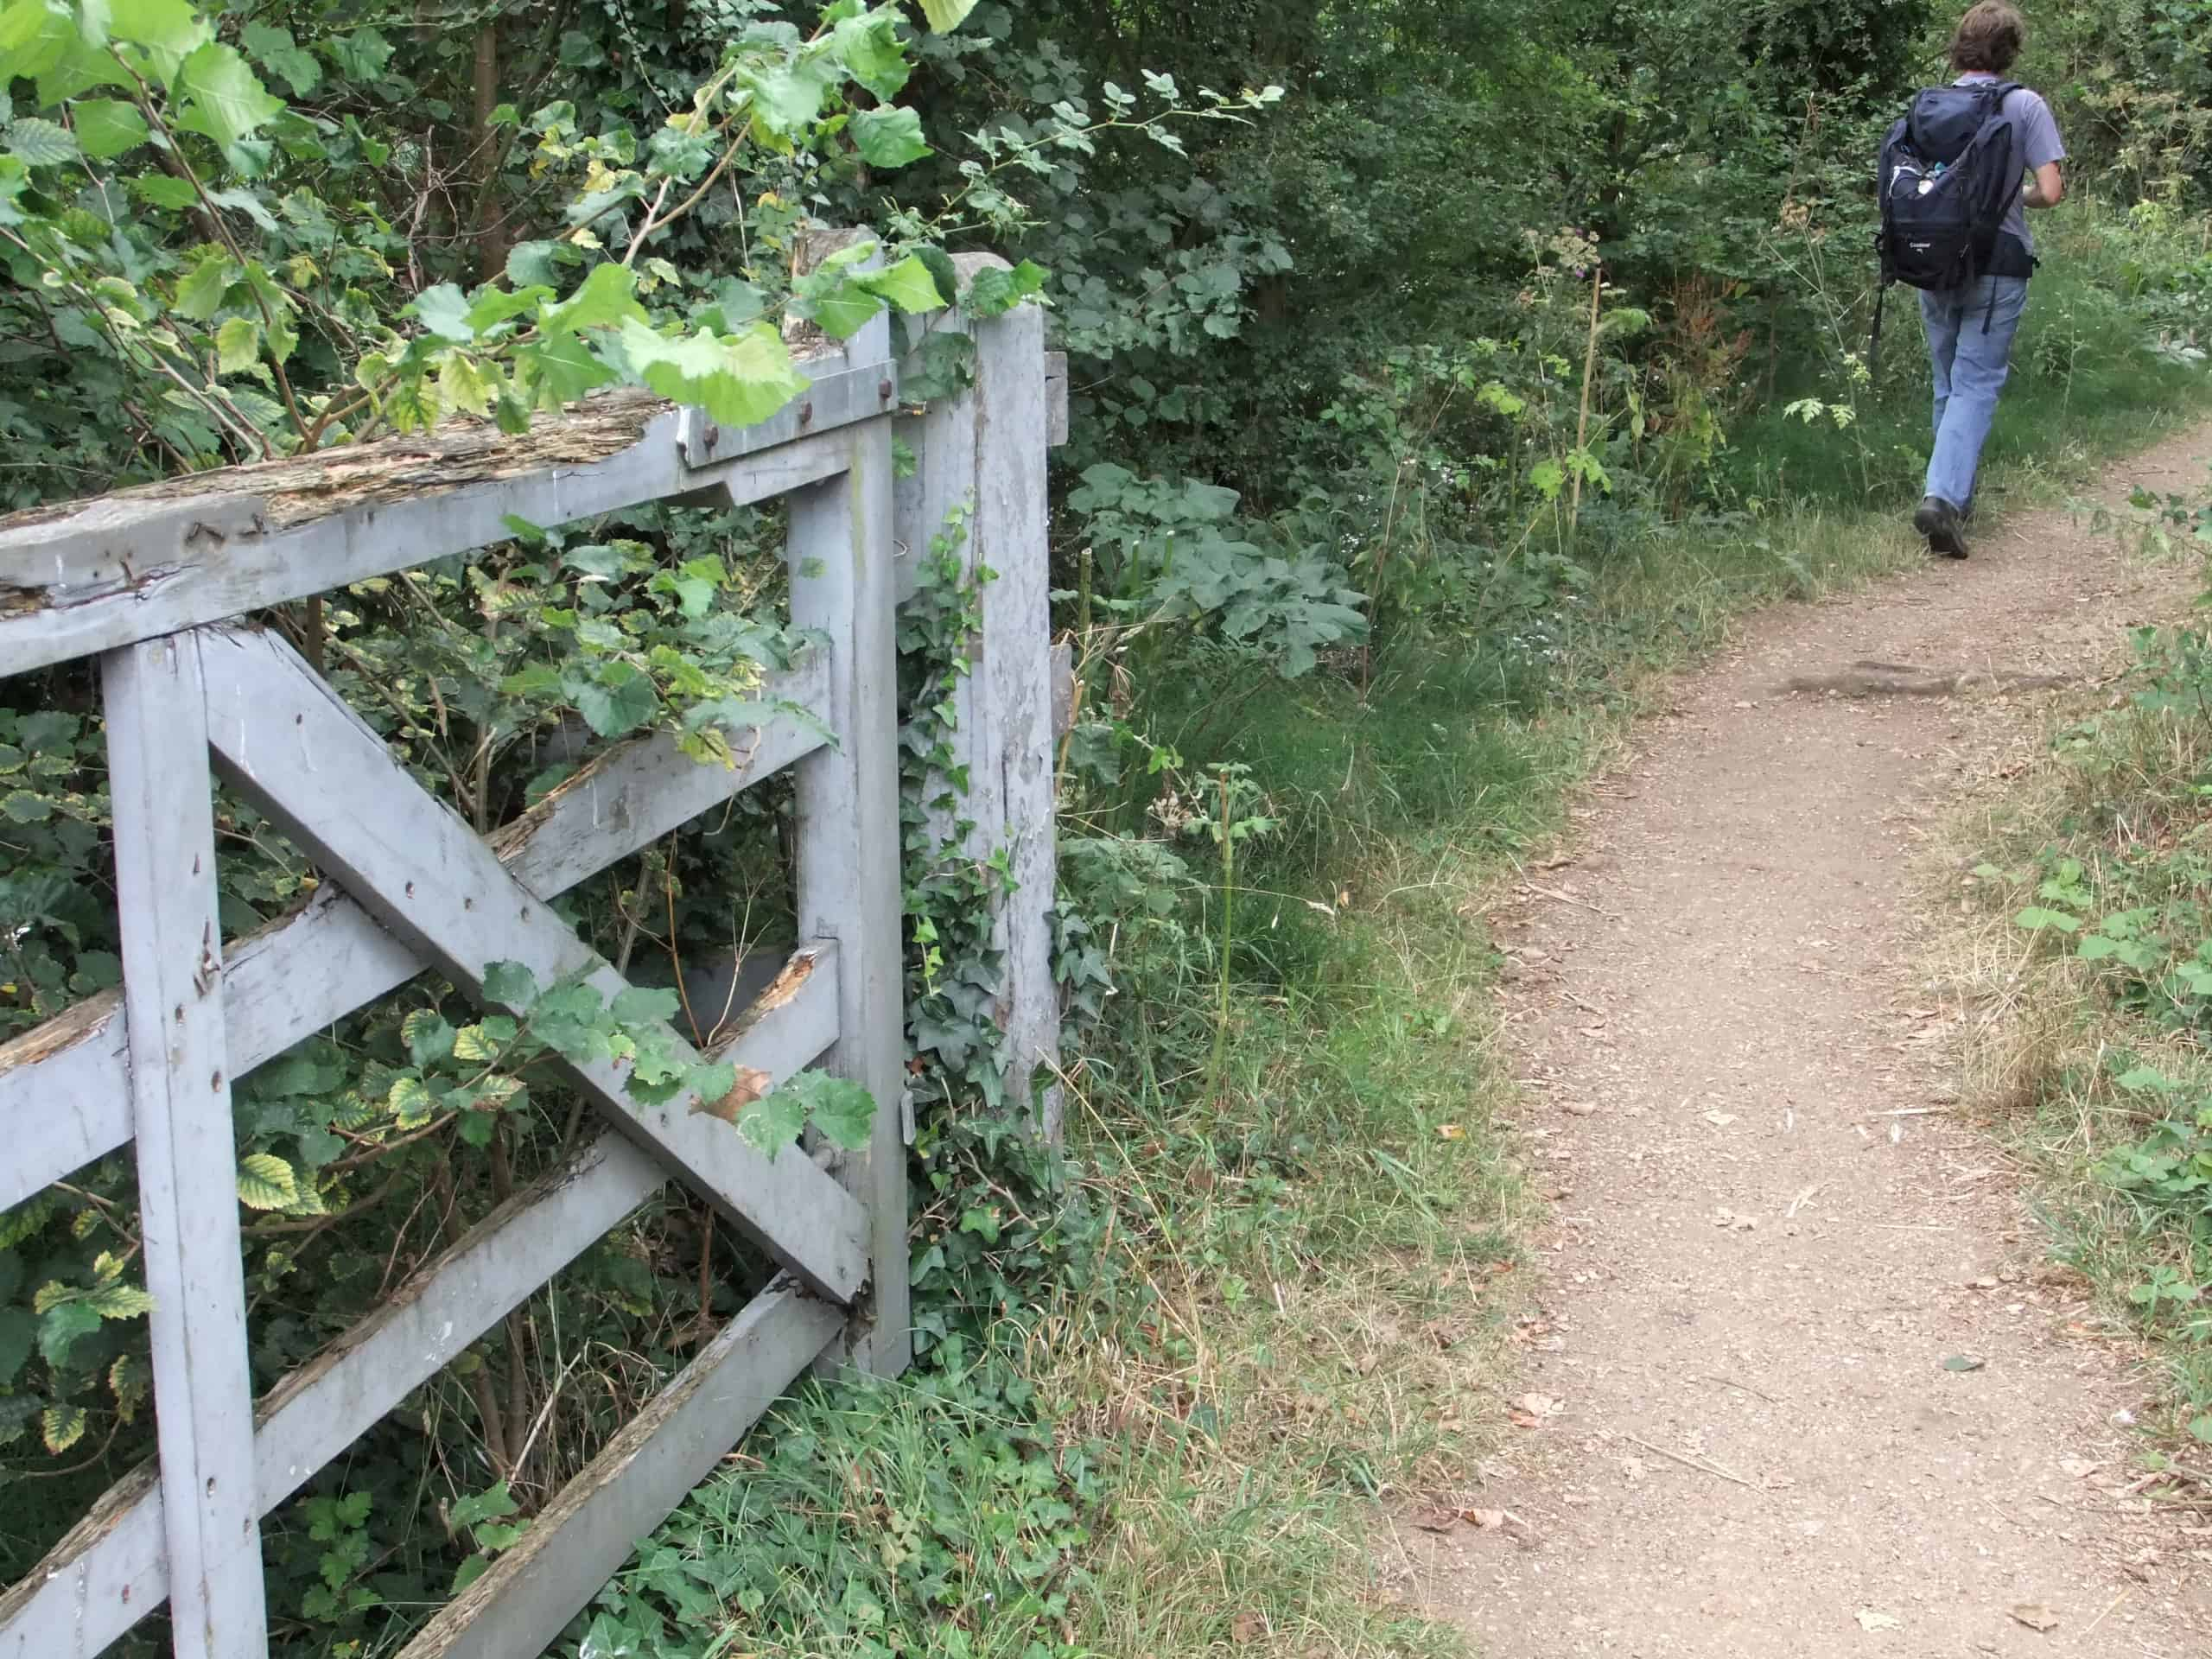 Routes that alternate between riverside towpaths and high hedgerows